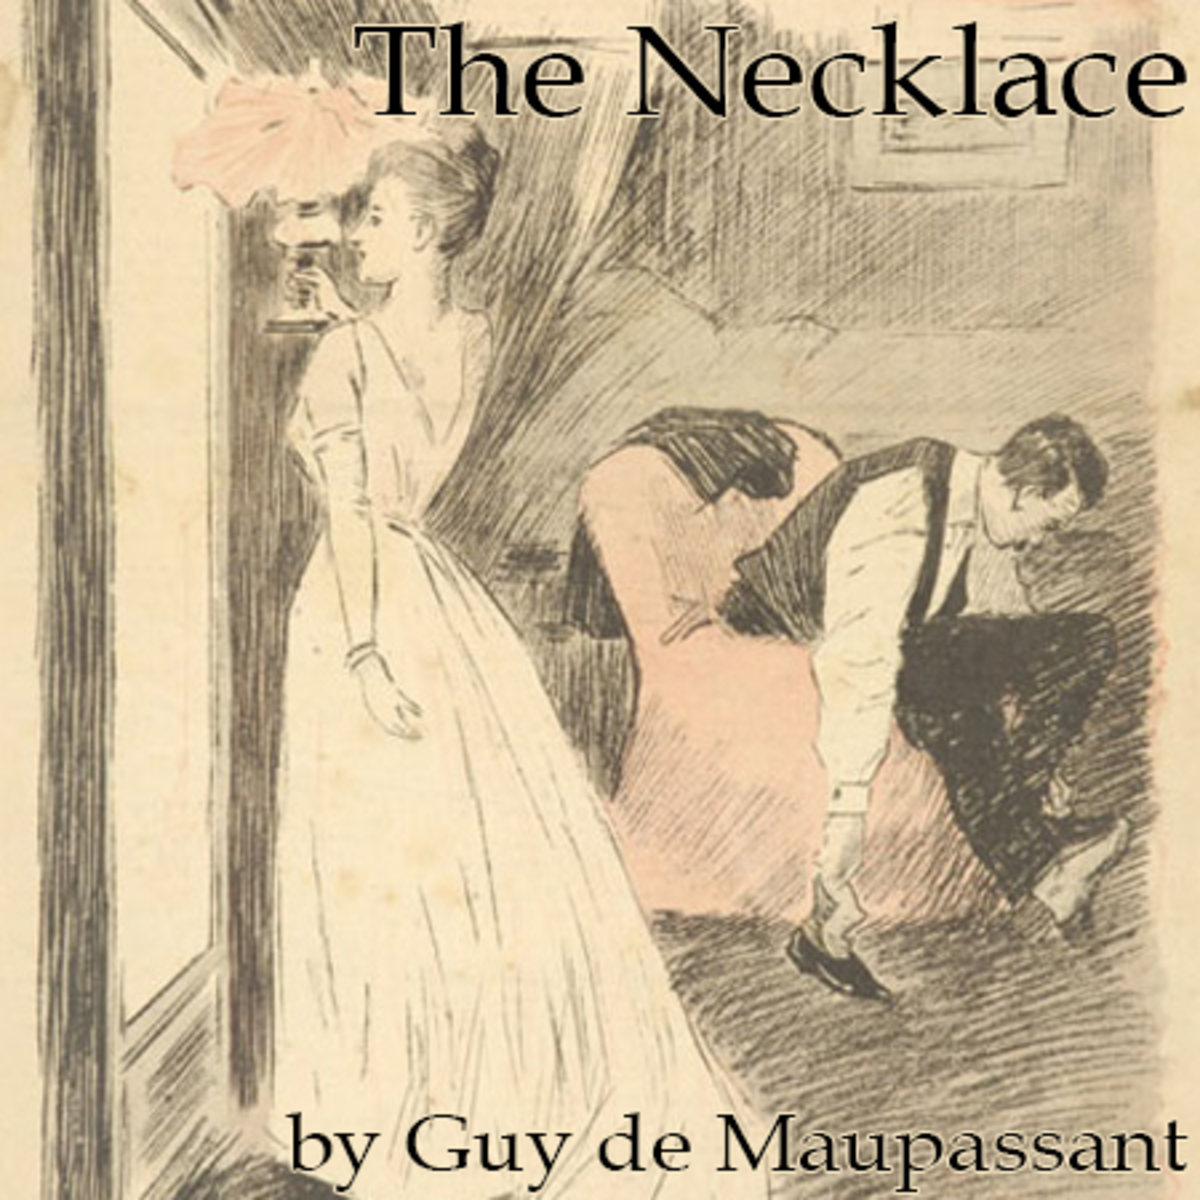 A Feminist and Formalist Analysis of The Necklace by Guy de Maupassant: Two Approaches to Interpreting a Literary Work